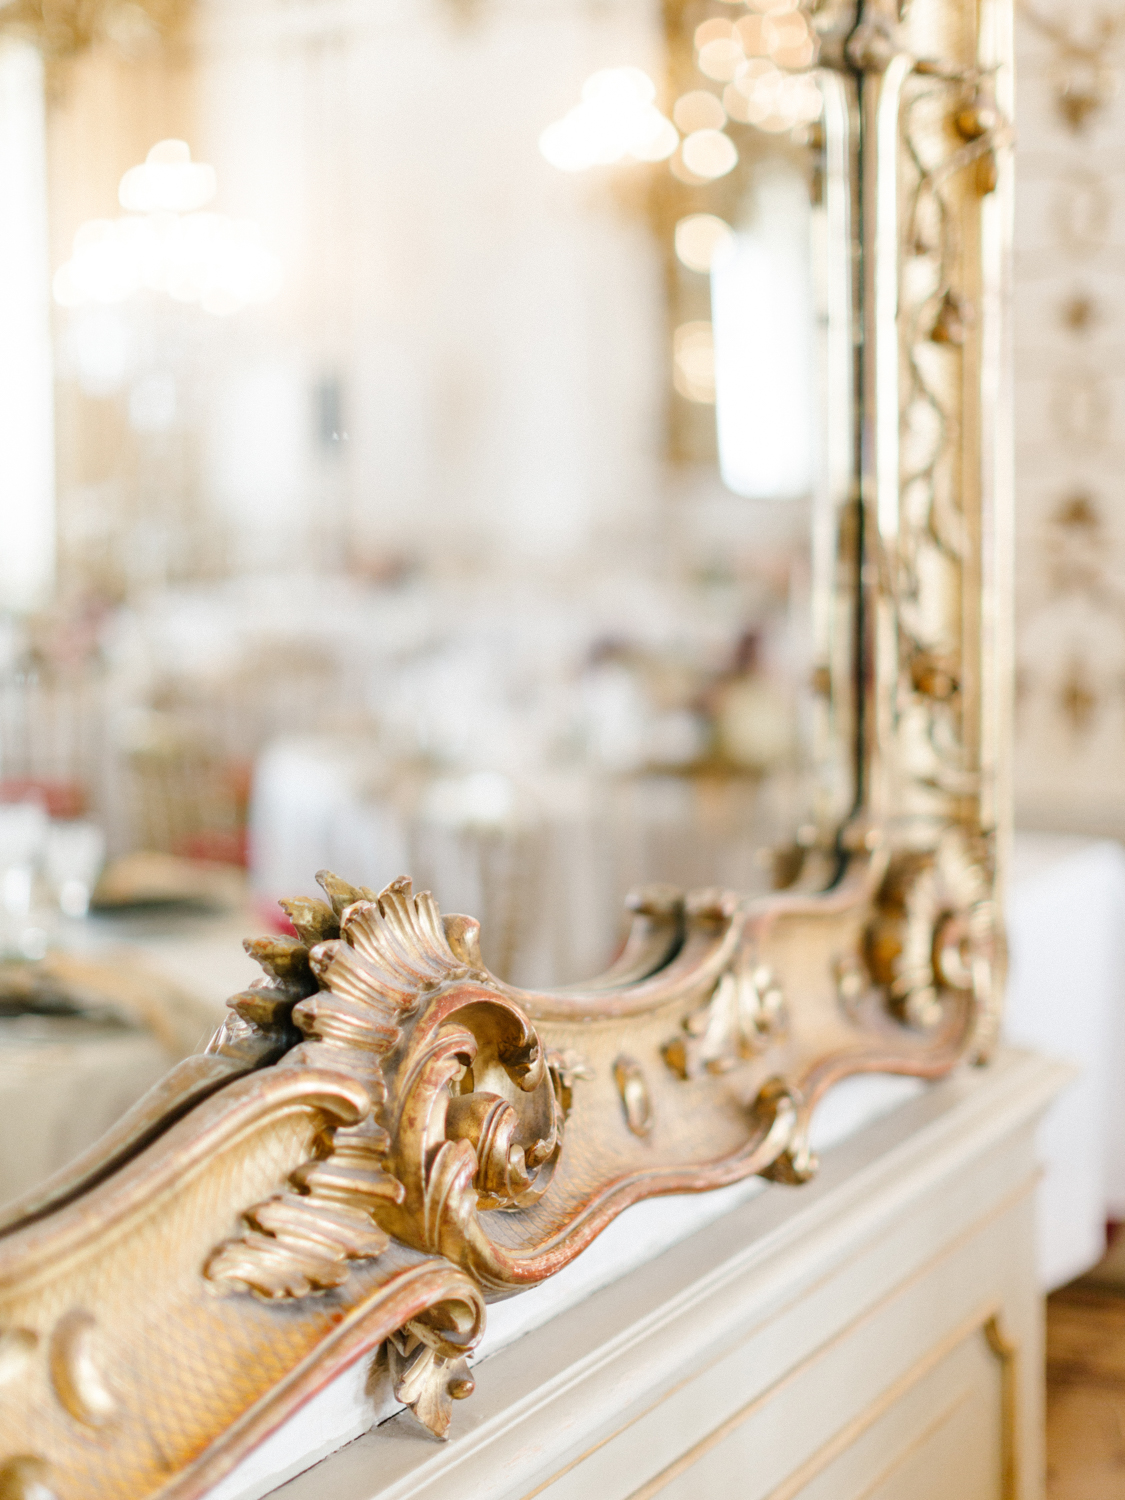 palais pallavicini wedding hotel imperial vienna wedding photographer nikol bodnarova photography 152.JPG